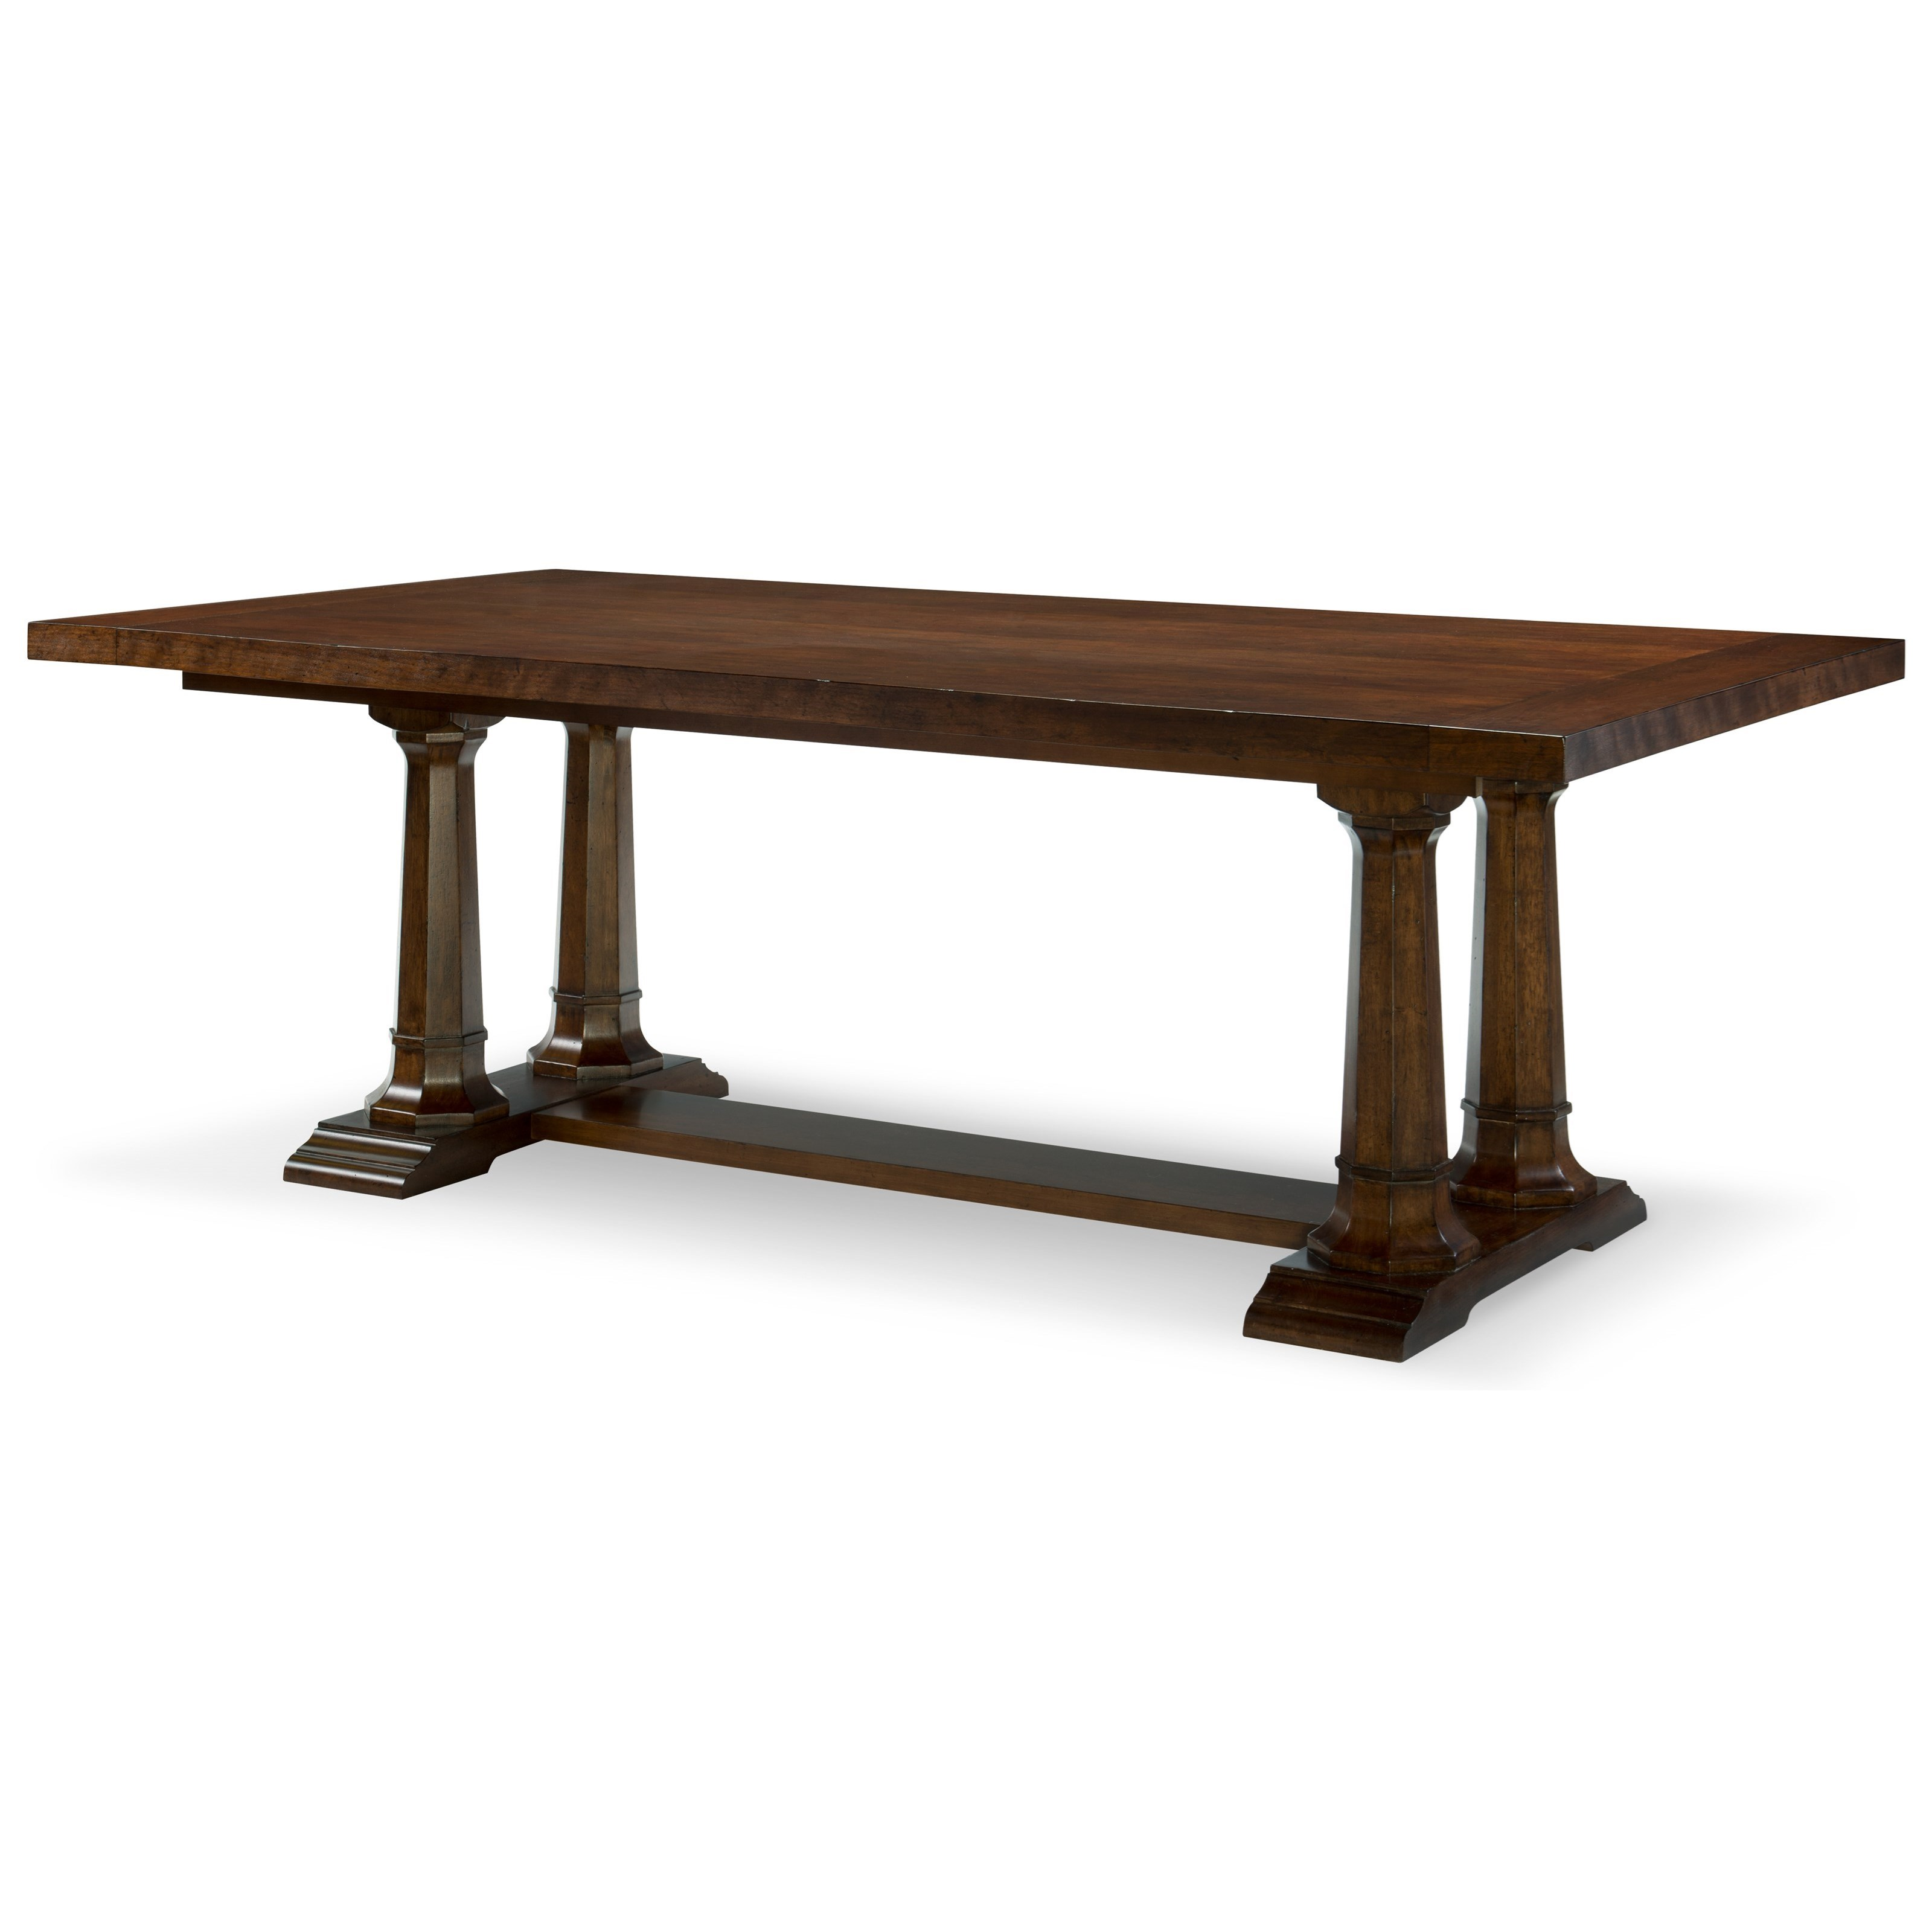 Rachael ray home by legacy classic upstate trestle table for Legacy classic dining table